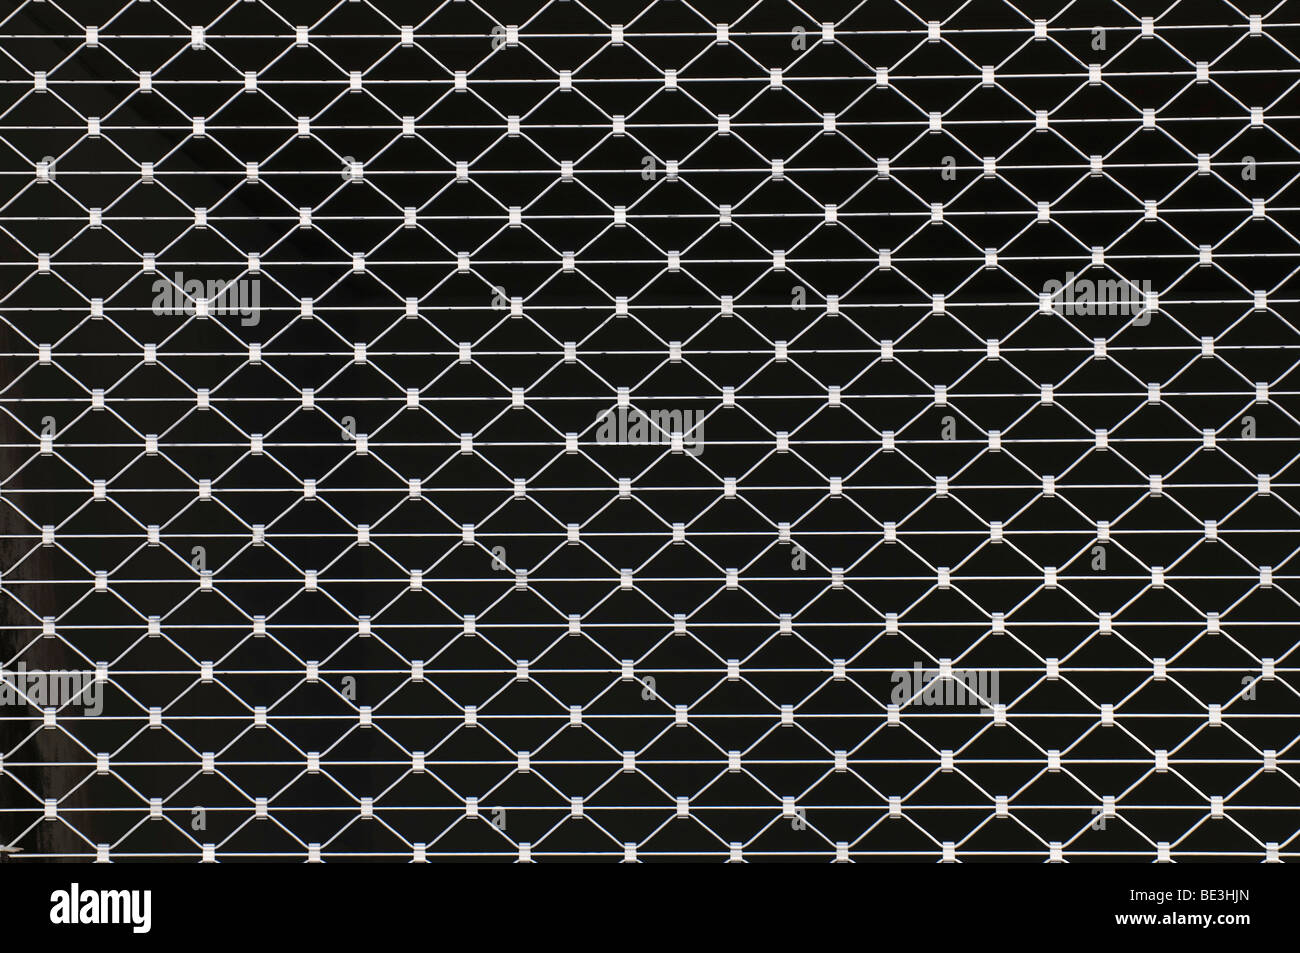 Metal rolling grilles, full-frame - Stock Image